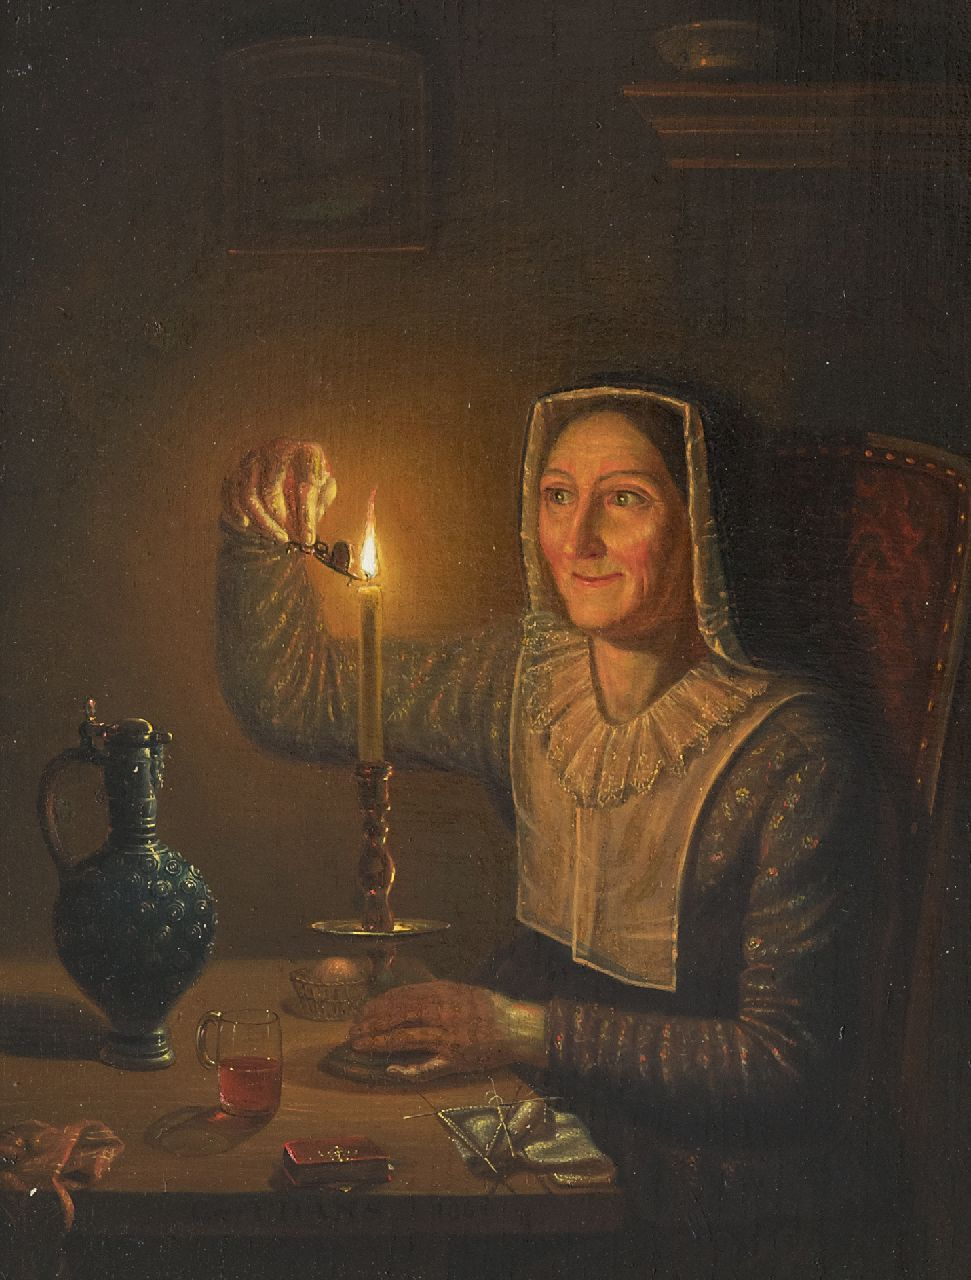 Thans W.  | Willem Thans | Paintings offered for sale | Woman with a candle, oil on panel 29.7 x 22.4 cm, signed l.c. on the table edge and dated 1850